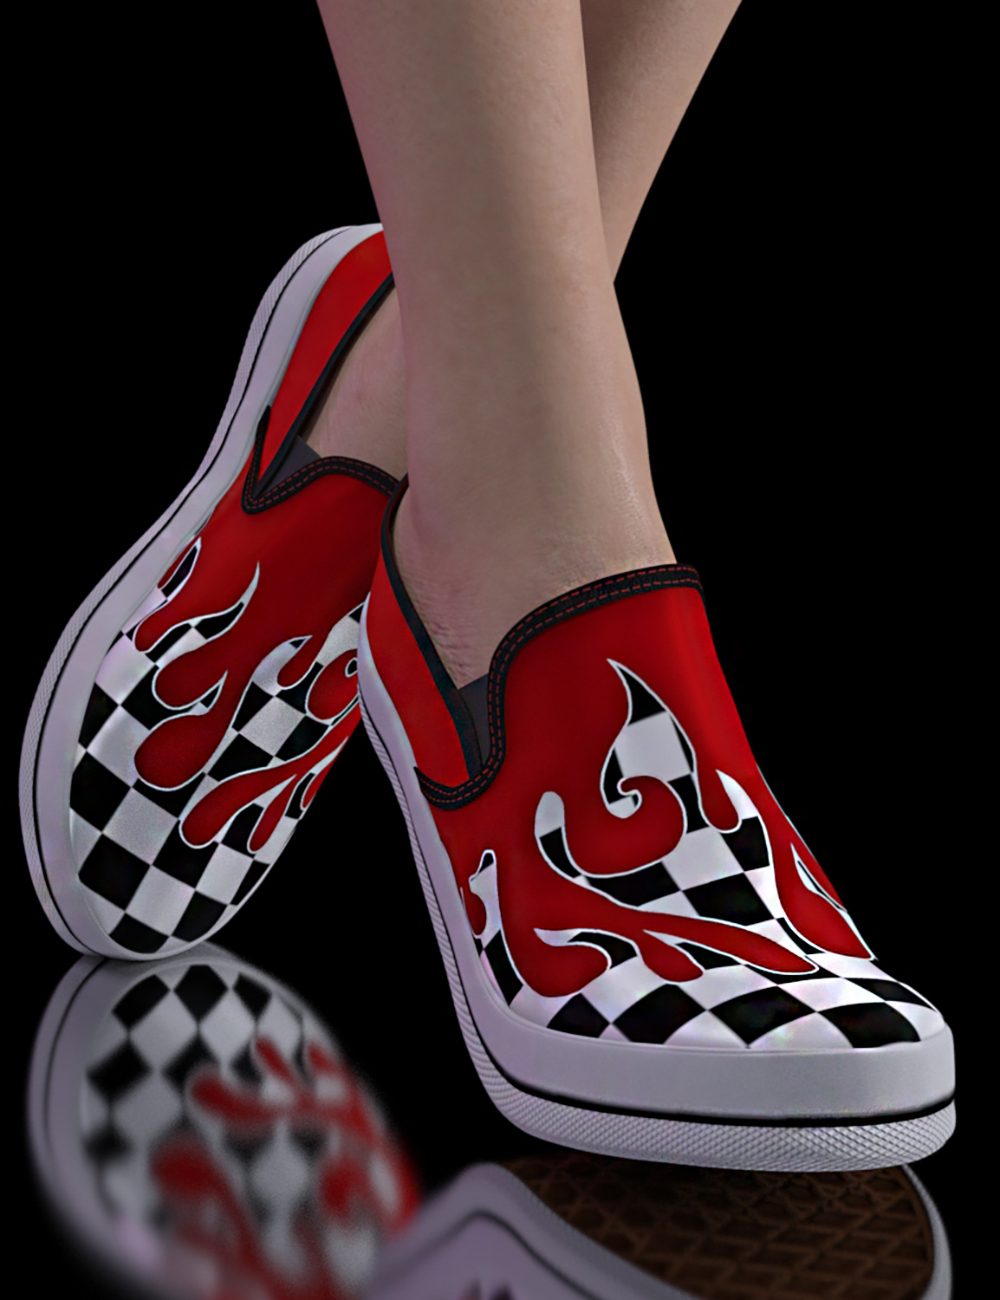 Sneakers for Genesis 8.1 & Victoria 8.1 by: 3DStyle, 3D Models by Daz 3D